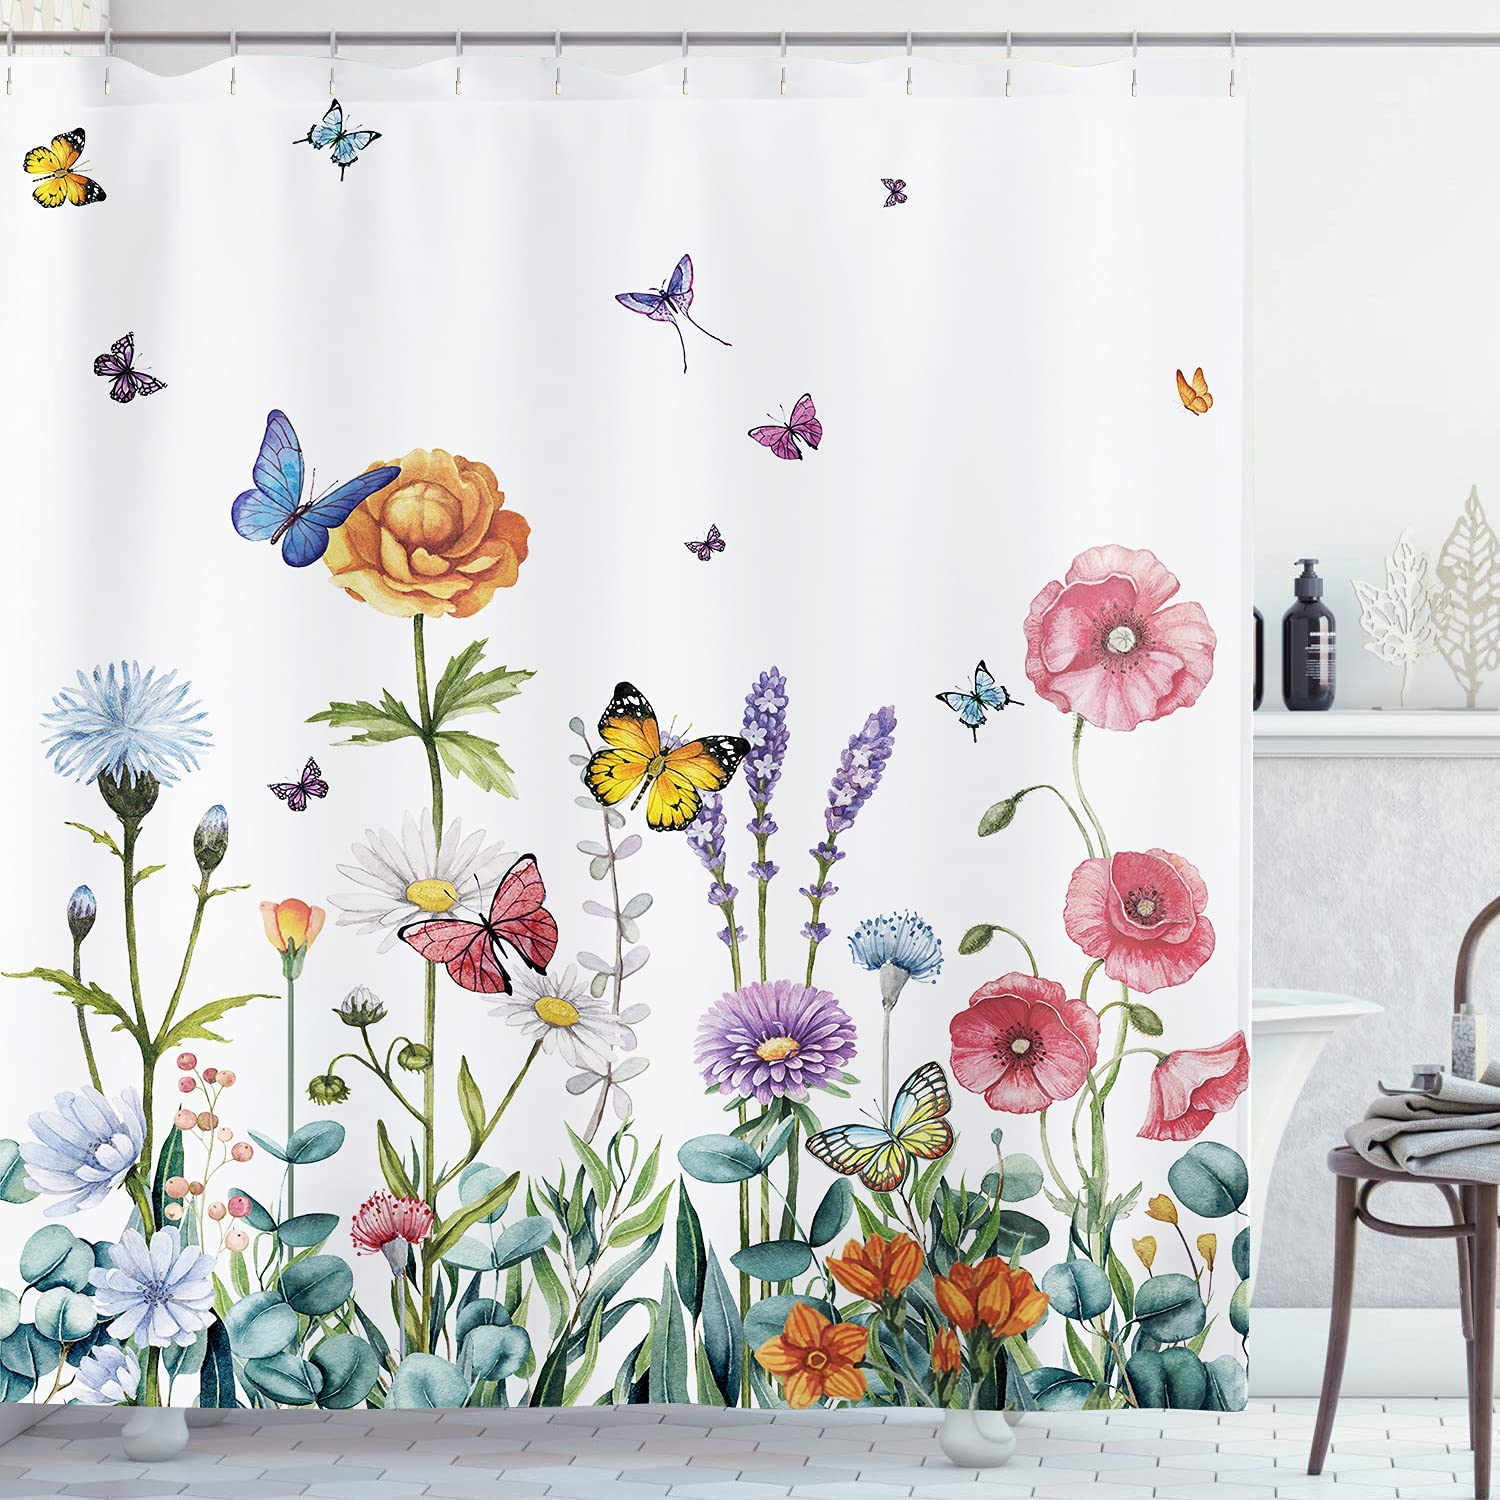 AMBZEK Floral Shower Curtain Butterfly Flower 60Wx72L Inch Colorful Wildflowers Bathroom Accessories for Women Rustic Garden Blossom Watercolor Leaves Fabric Bathroom Decor 12 Pack Plastic Hooks